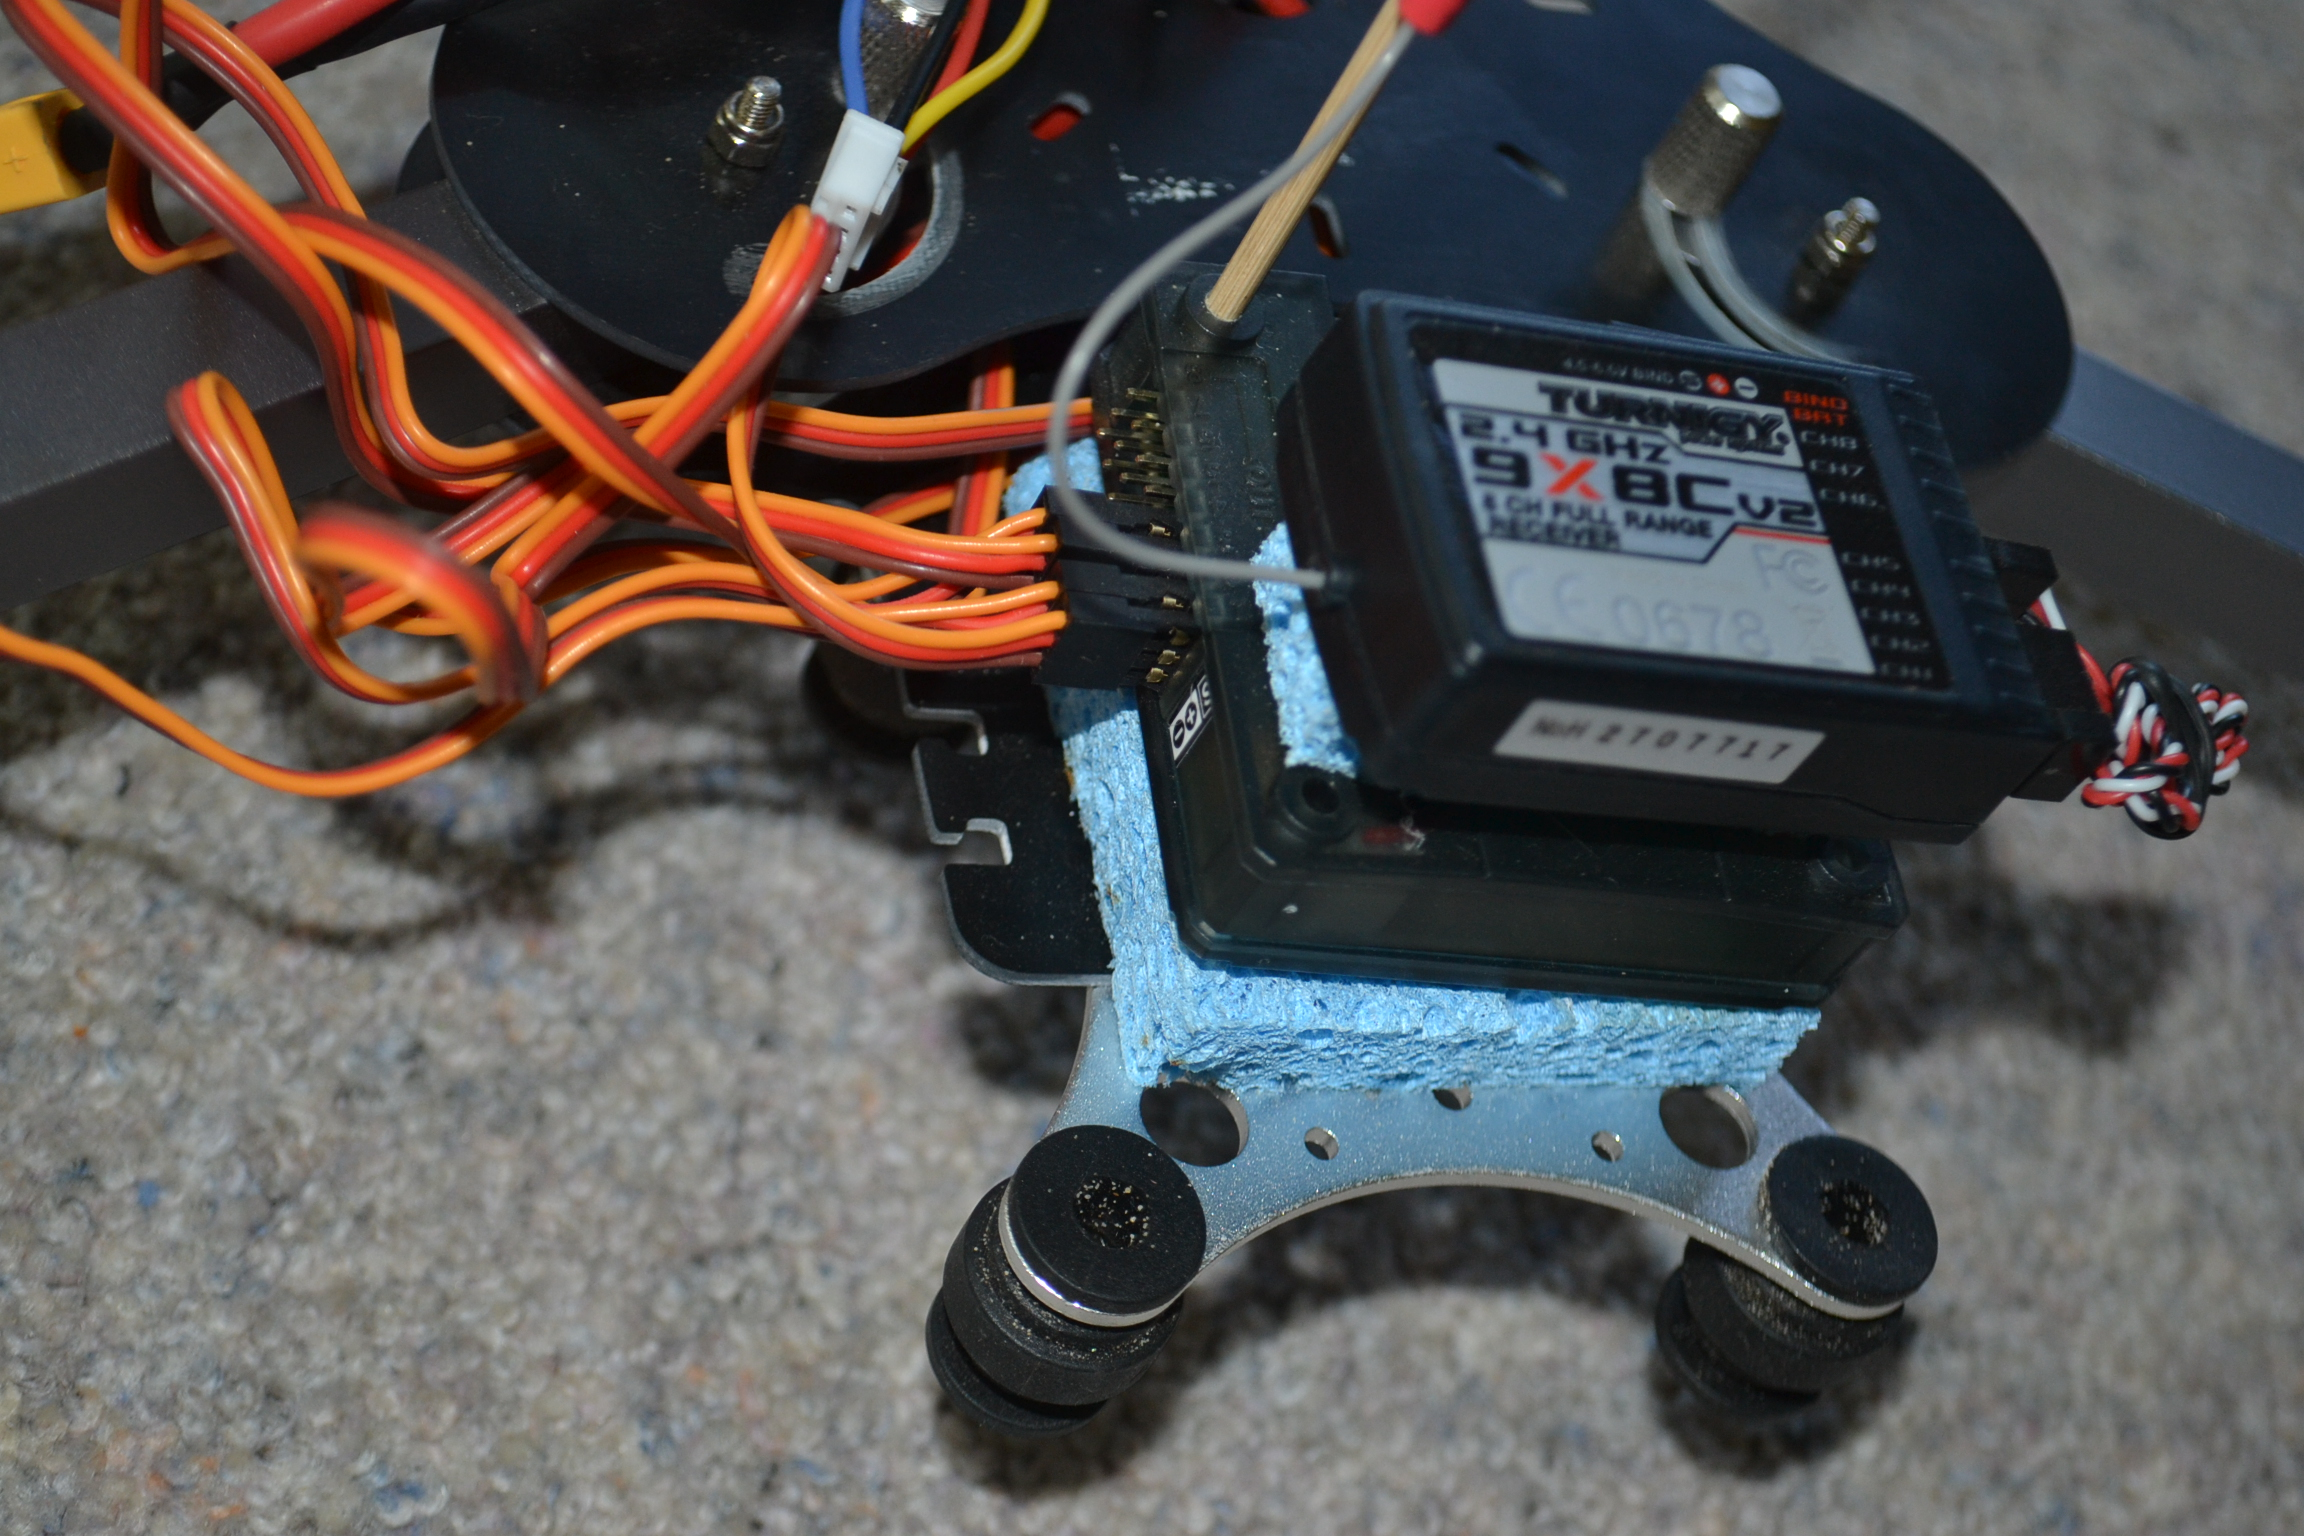 Help My First Tricopter Wont Fly Flitetest Forum Kk2 1hc Wiring Diagram Ive Attached Some Photos Close Up To See If Anyone Can Spot Anything That Could Be The Problem One Of Shows An Arrow On Motor Which Points